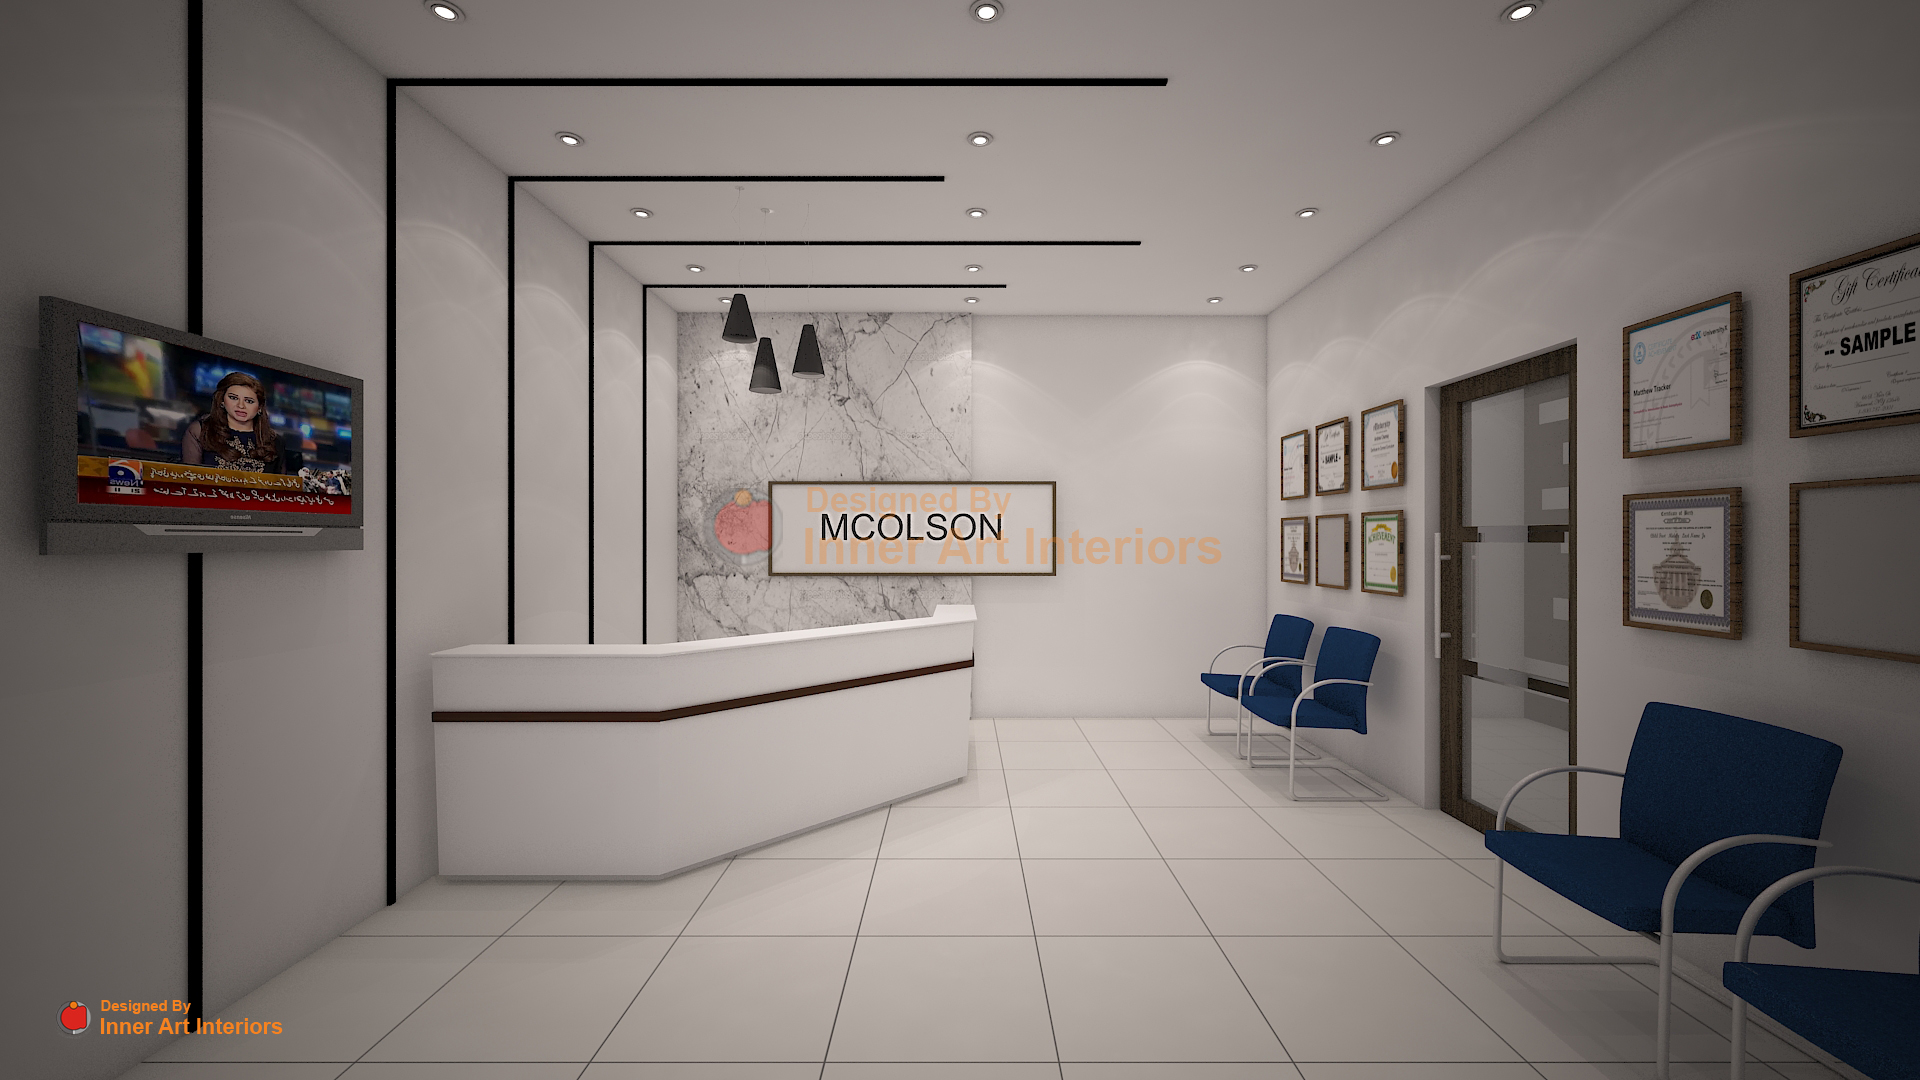 Mcolson Office